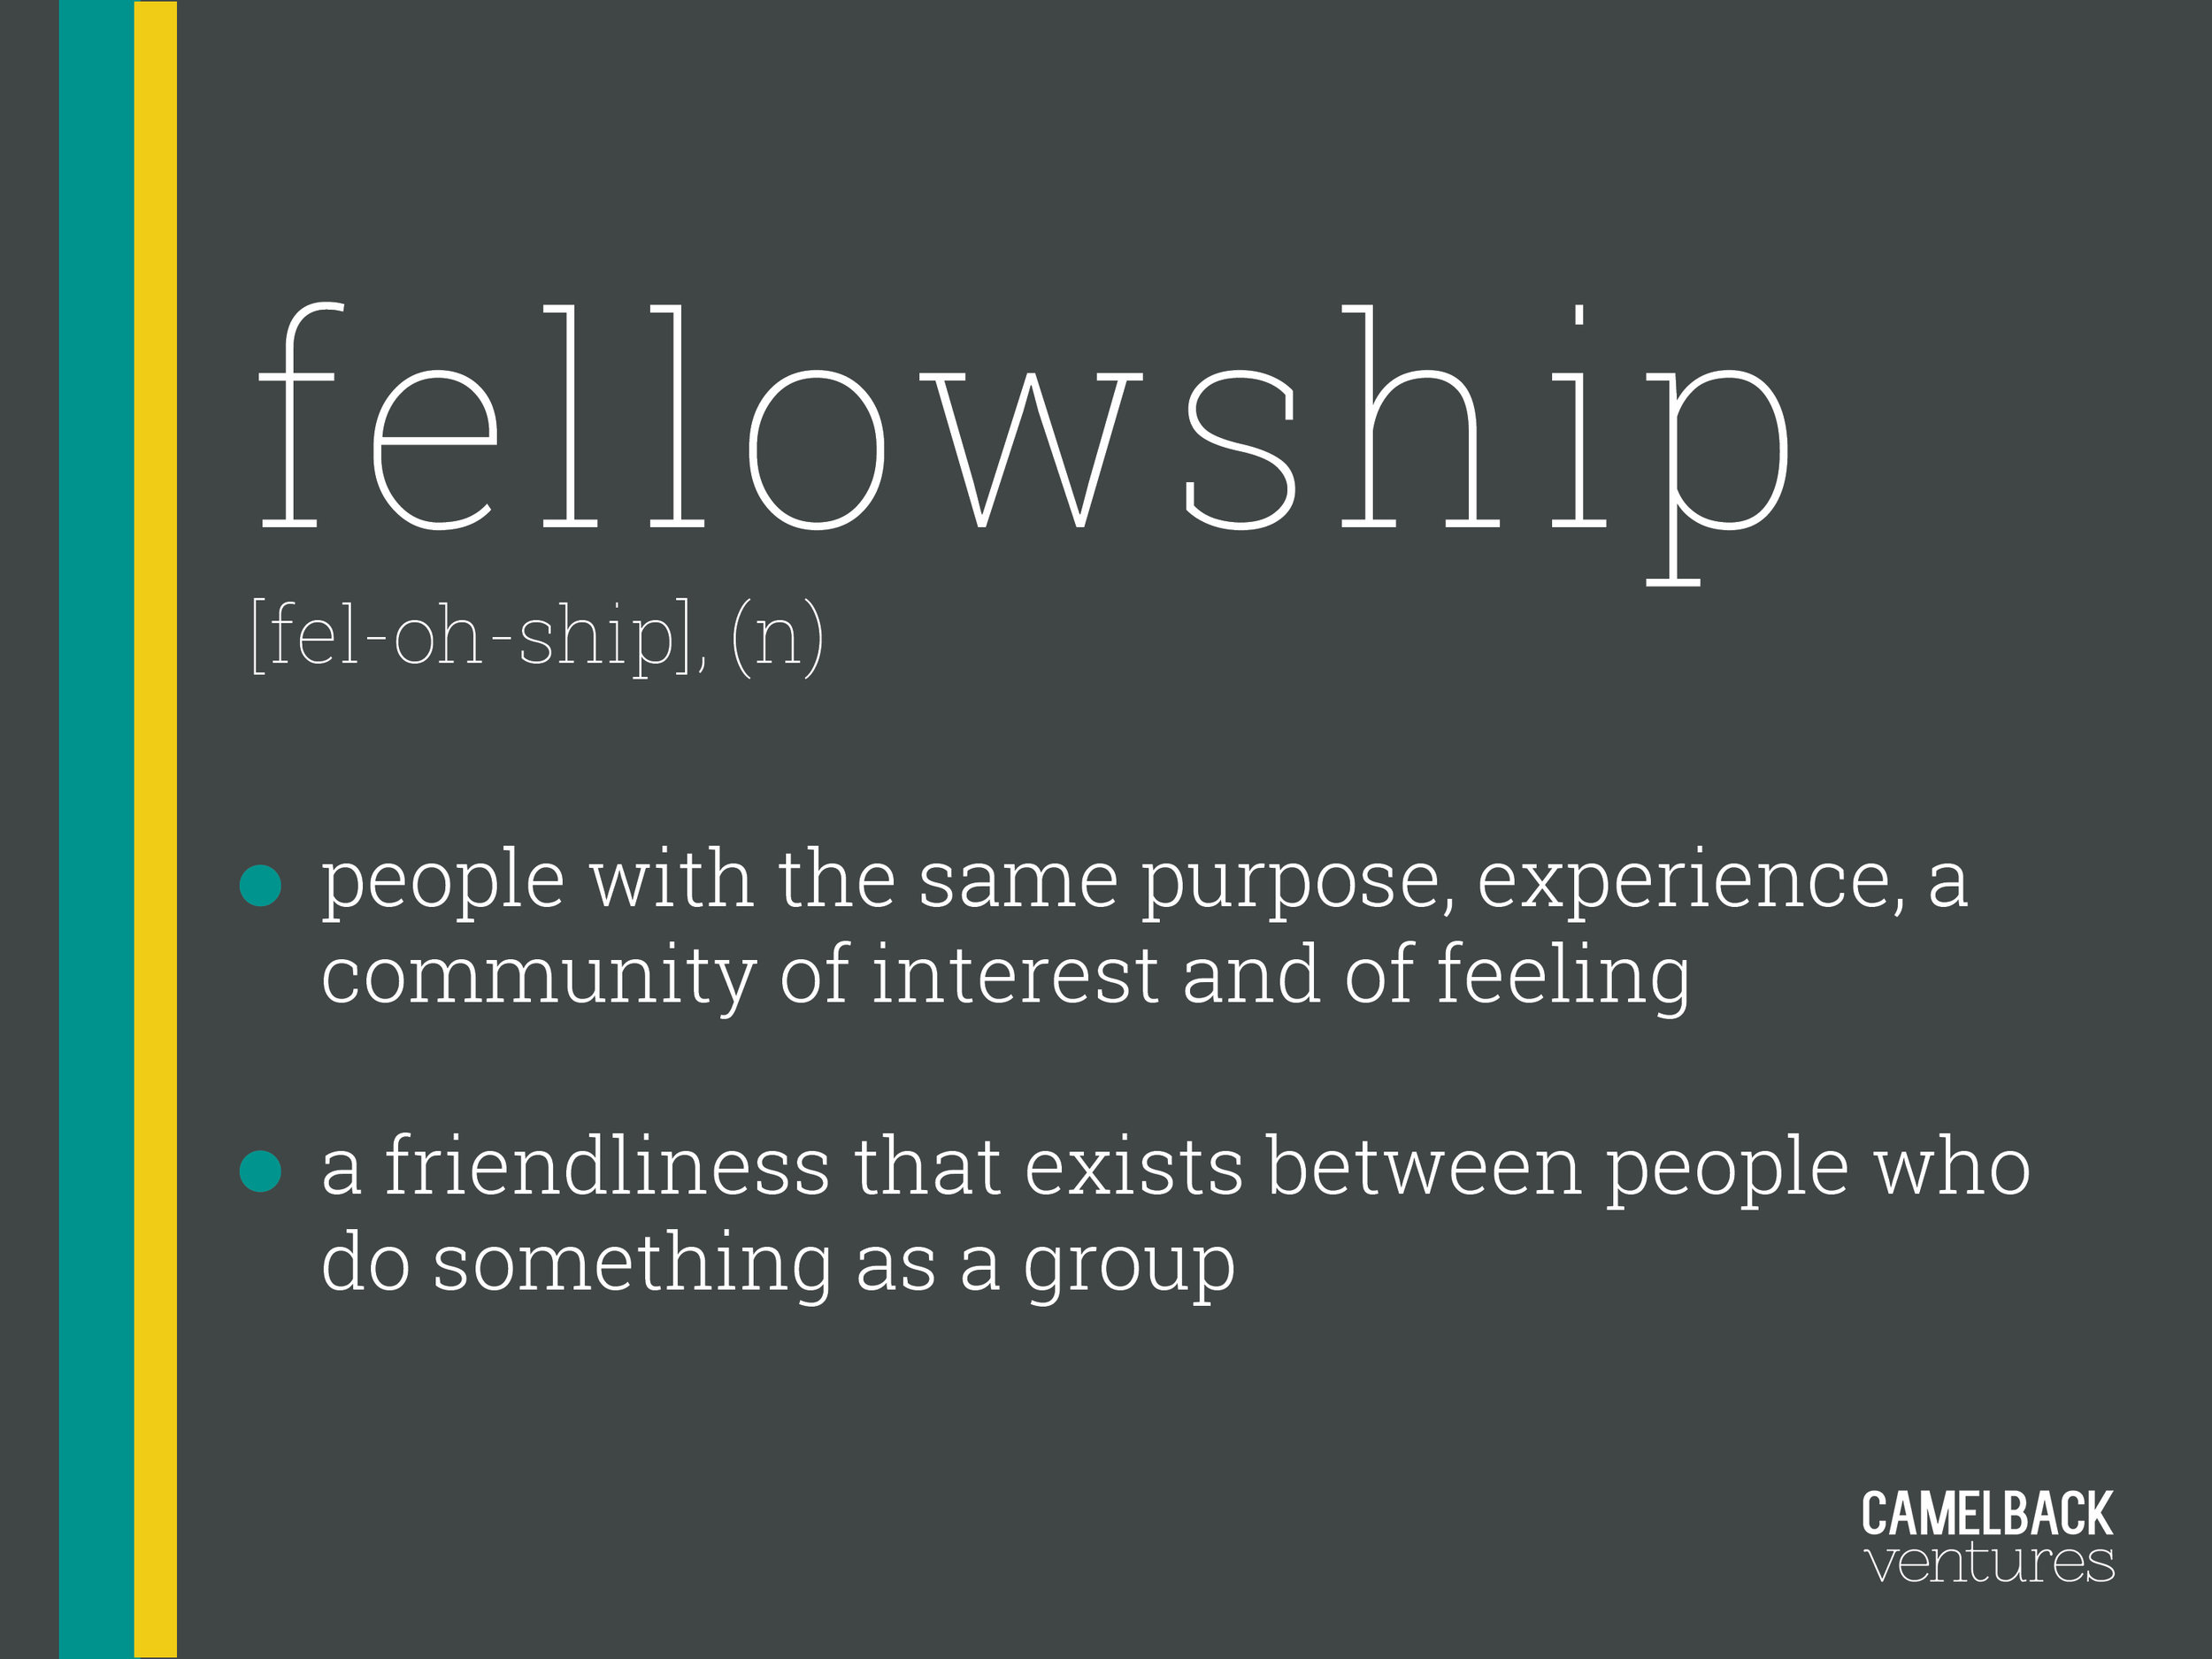 """I felt that one of the branding breakthroughs was when I did a deep analysis of the language we used in our program, including the word """"fellowship."""" Why not """"accelerator"""" or """"incubator?"""" When I looked """"fellowship"""" up in dictionaries, two definitions stood out to me, and I immediately copied them down. This is a selection from an early page of our internal brand book, and I believe gives context for our work. - AJT"""